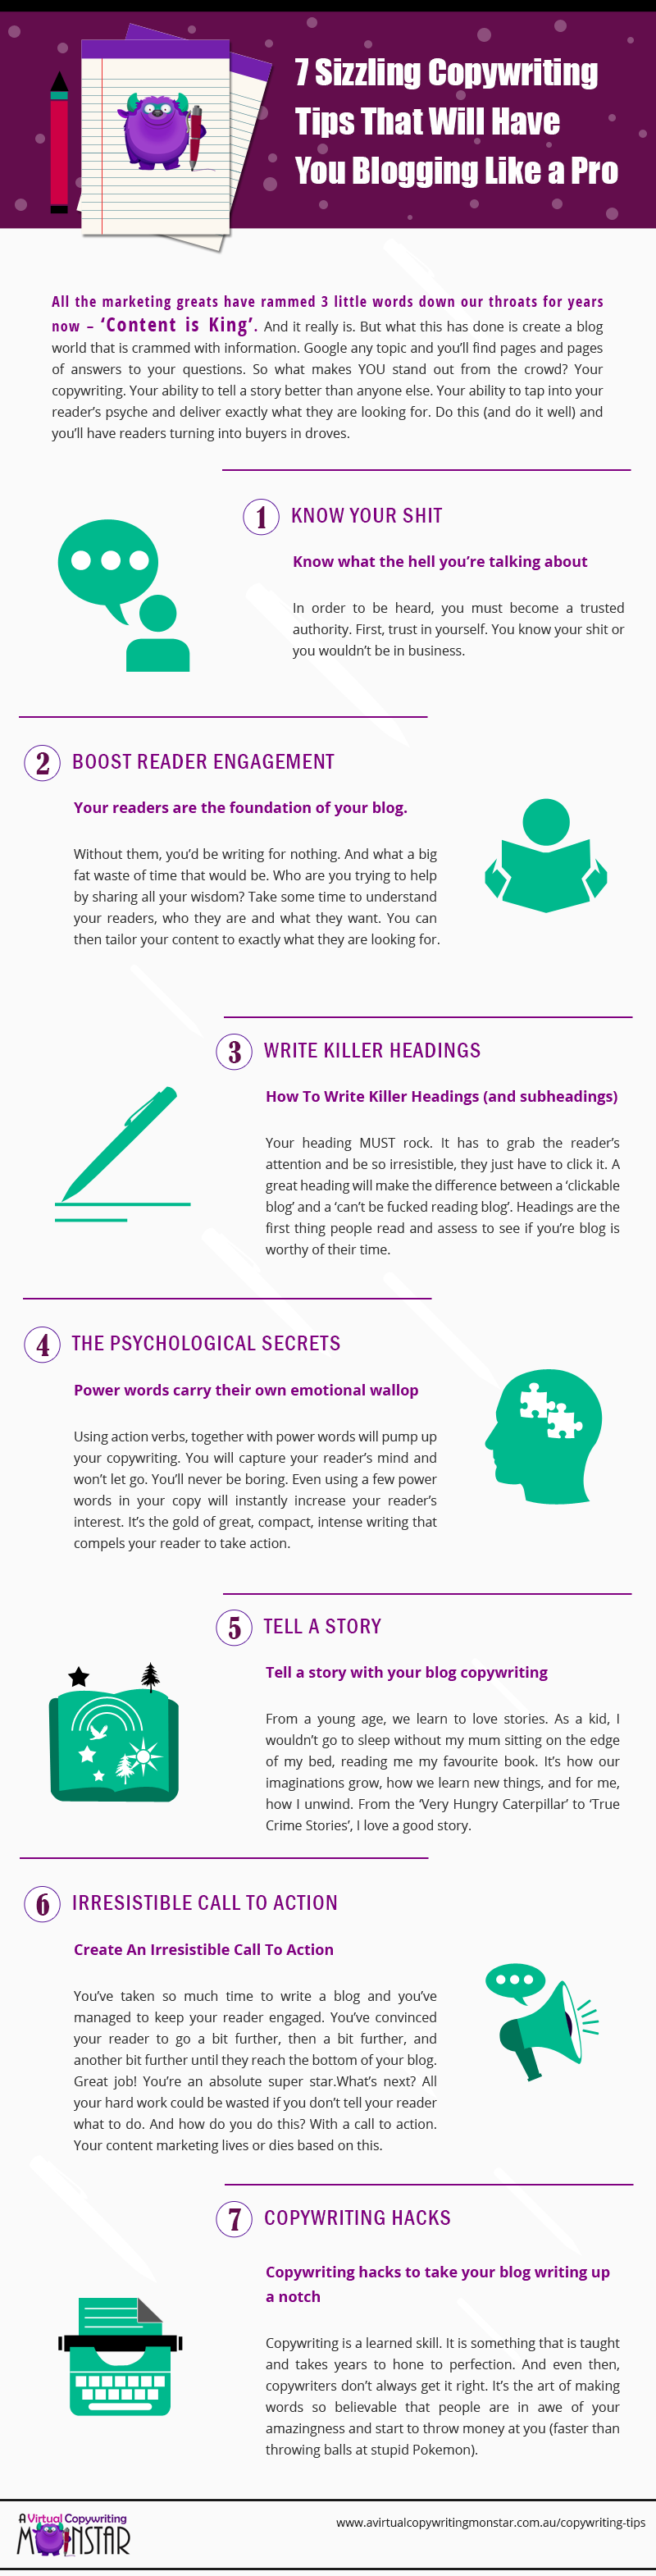 7 Copywriting Tips Info-graphic